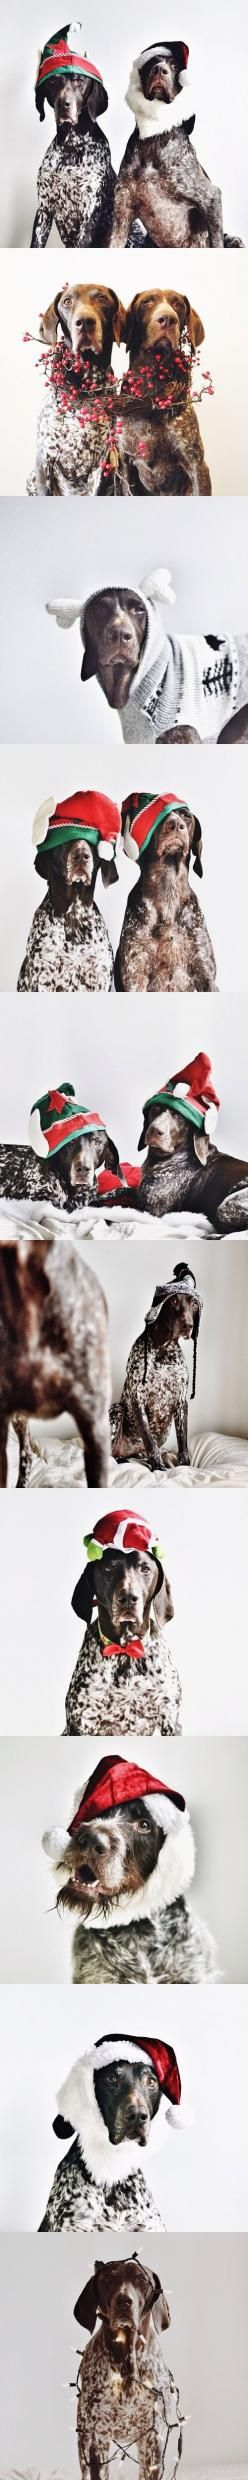 Gus & Travis - Christmas Photos - #GSP German Shorthaired Pointer #braque allemand: Card Idea, Christmas Pet Photography, Dog Christmas Photo Ideas, Pet Photography Ideas, Christmas Photo Dog, Christmas Pets Photos, Christmas Card, Christmas Dog Photo